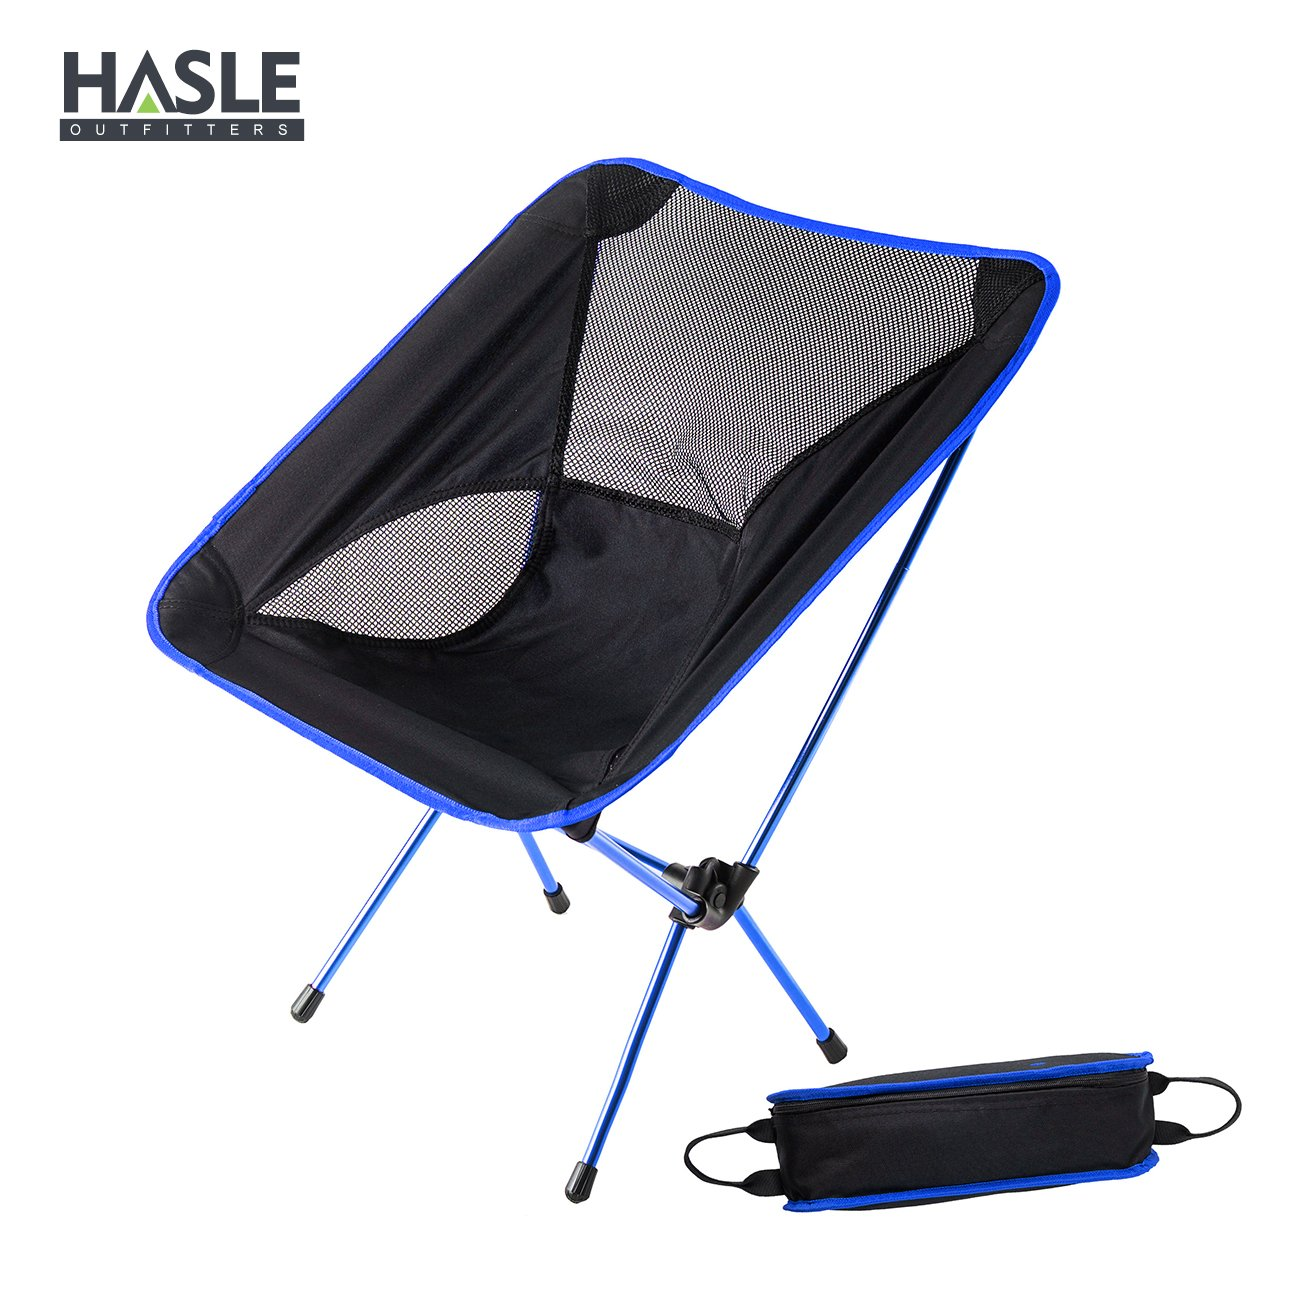 HASLE OUTFITTERS Portable Camping Chairs, Hiking Camping Chair, Outdoor Folding Backpacking Chairs for Travel, Picnic, Hiking.